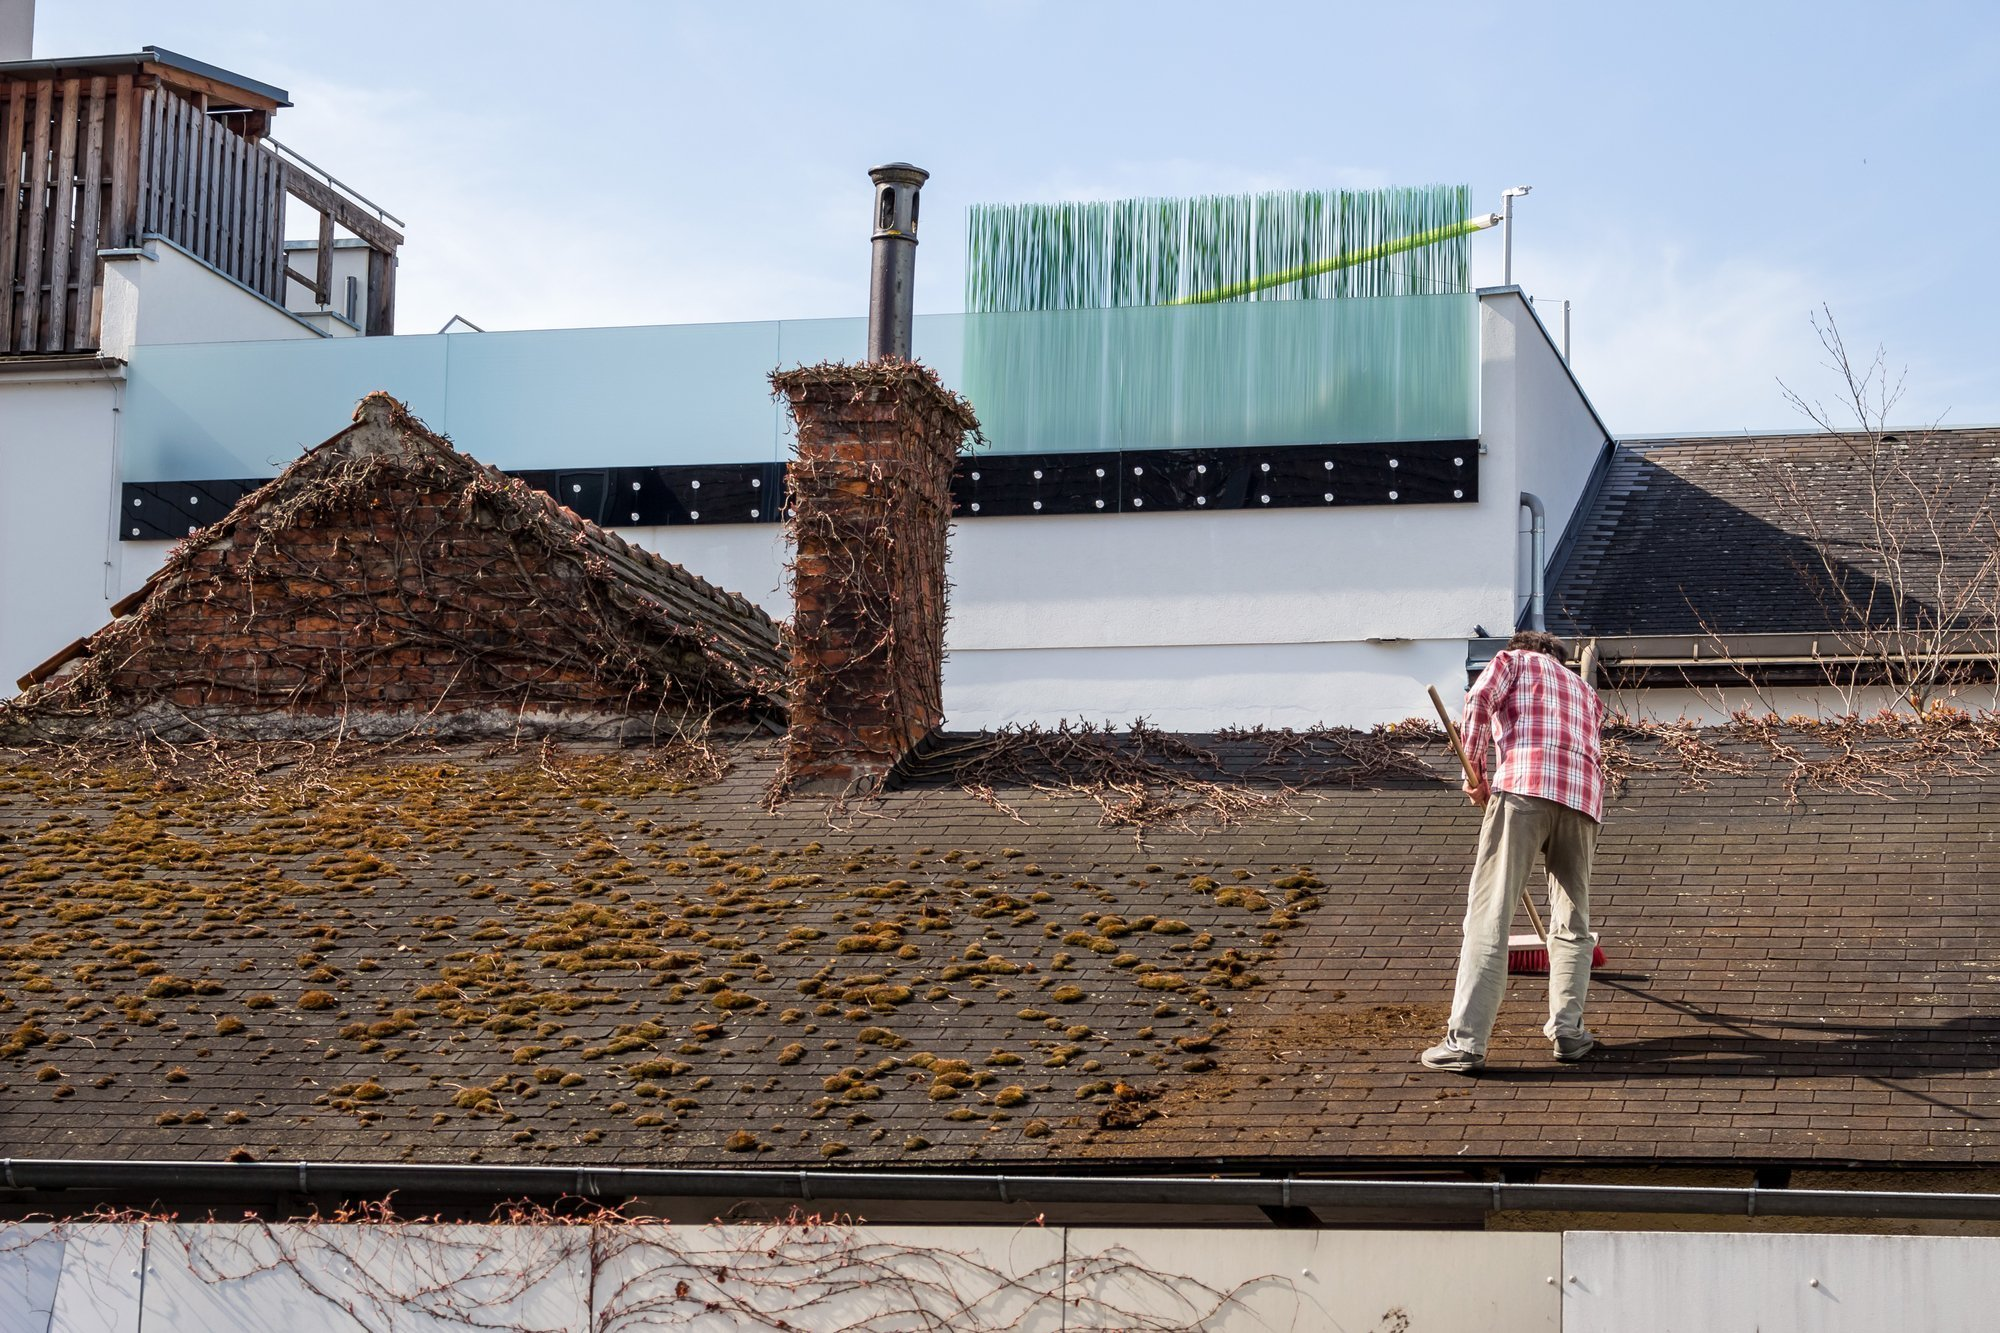 Tips on Tackling the Moss or Algae on Your Roof That You Need to Know